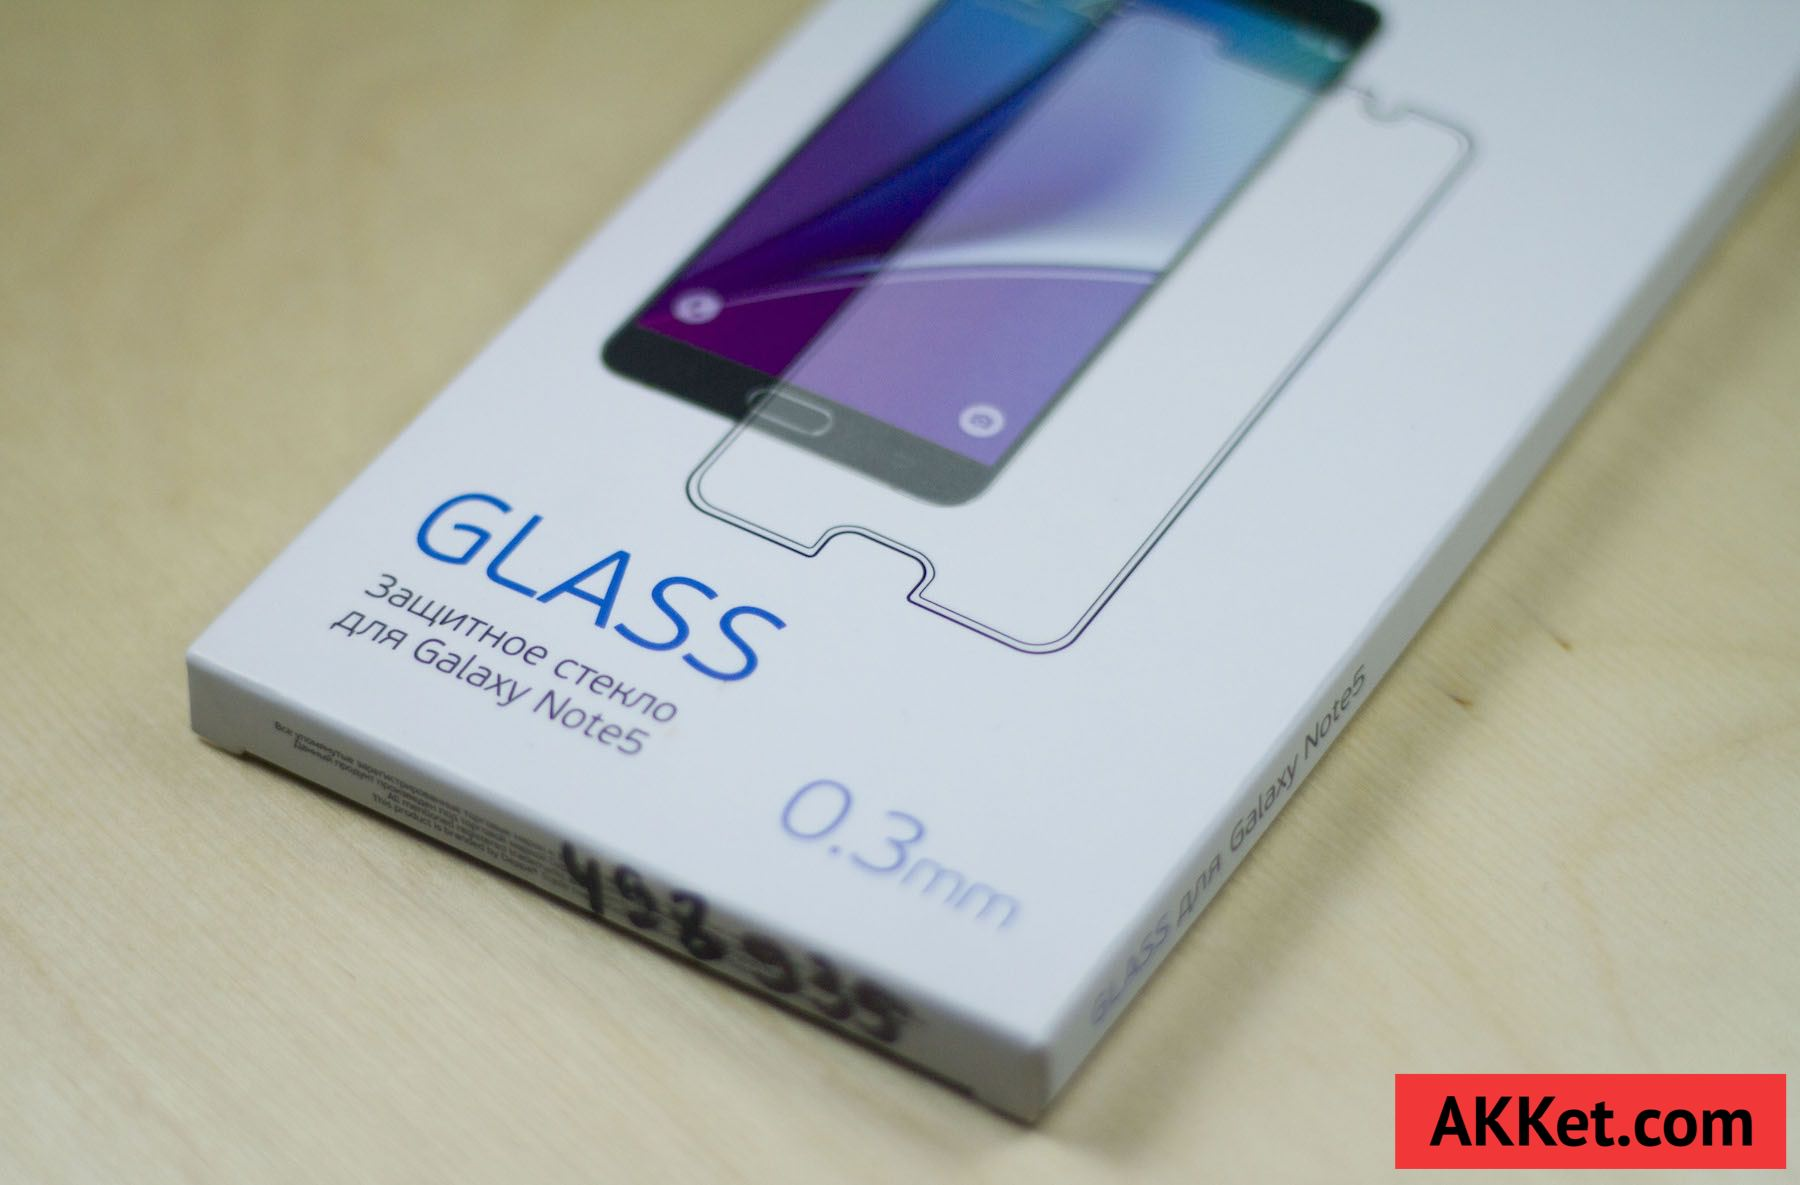 Deppa Glass Samsung Galaxy Note 5 review screen 2